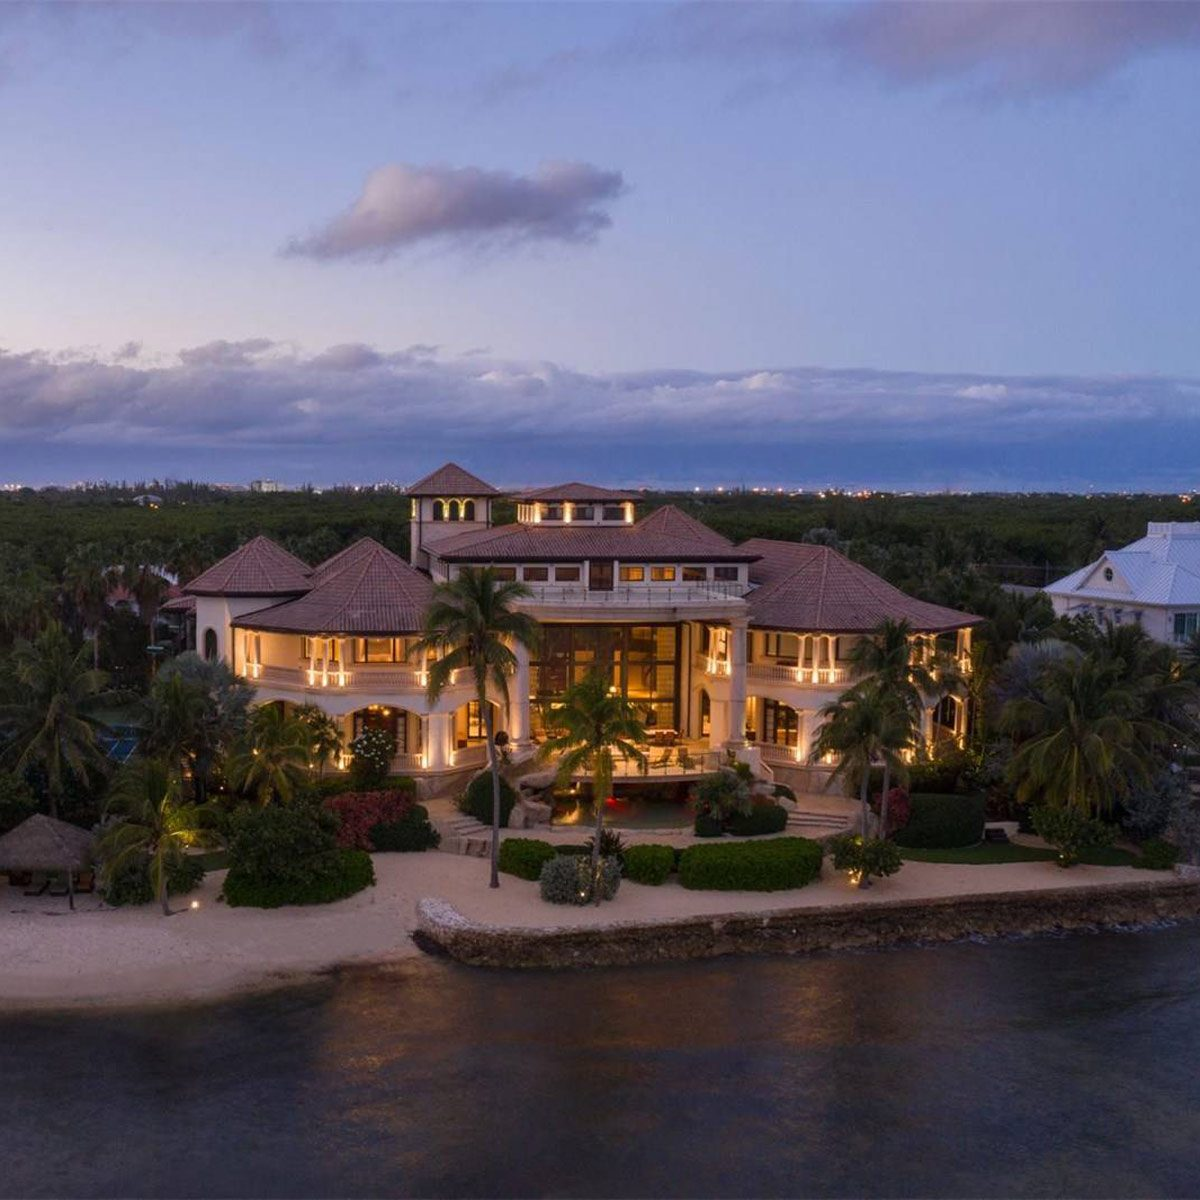 Large mansion with big beach